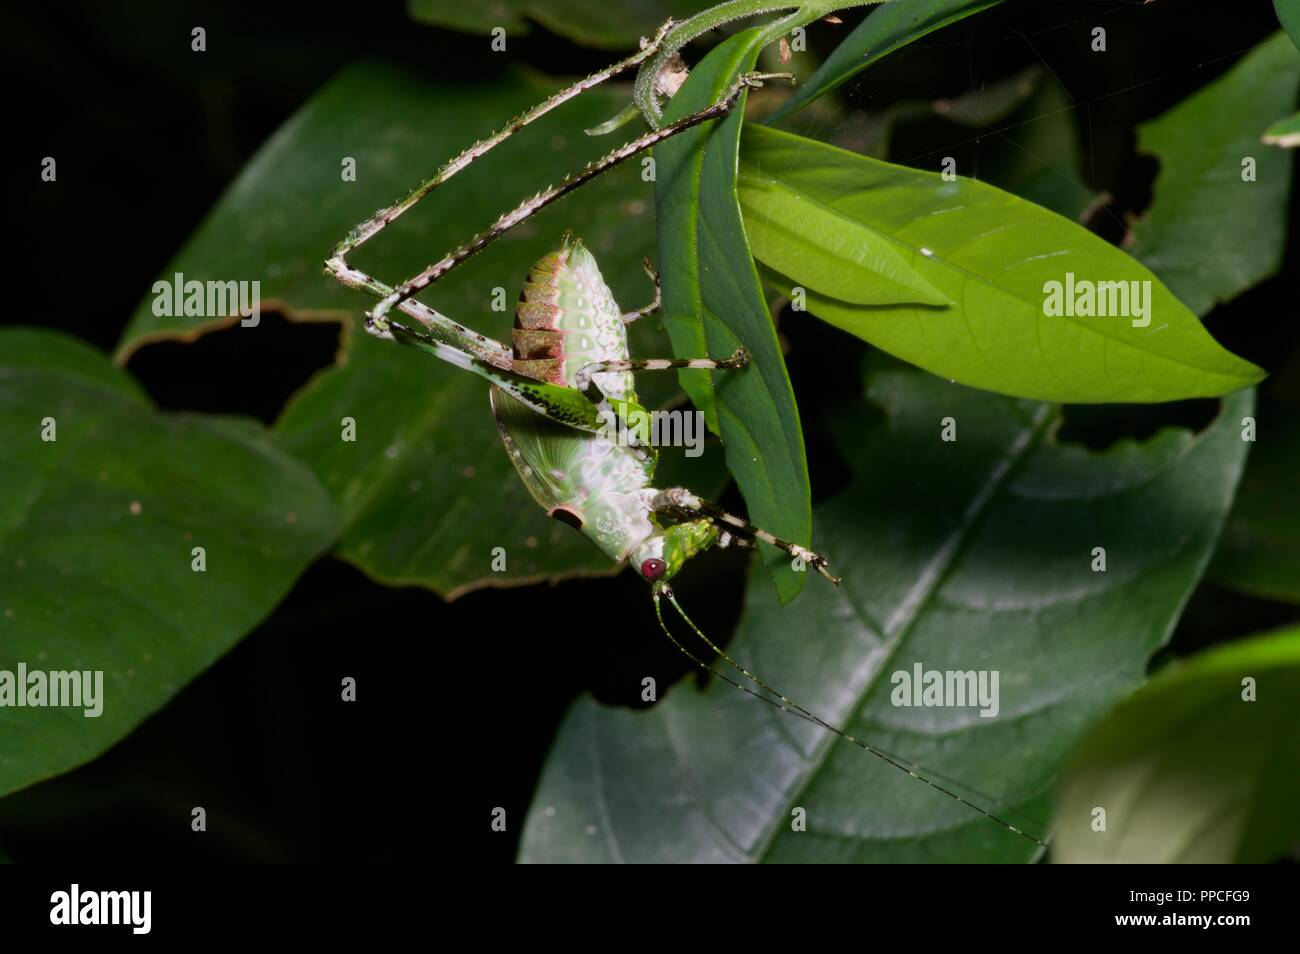 A katydid nymph (family Tettigoniidae) in the rainforest foliage at night in Atewa Range Forest Reserve, Ghana, West Africa - Stock Image